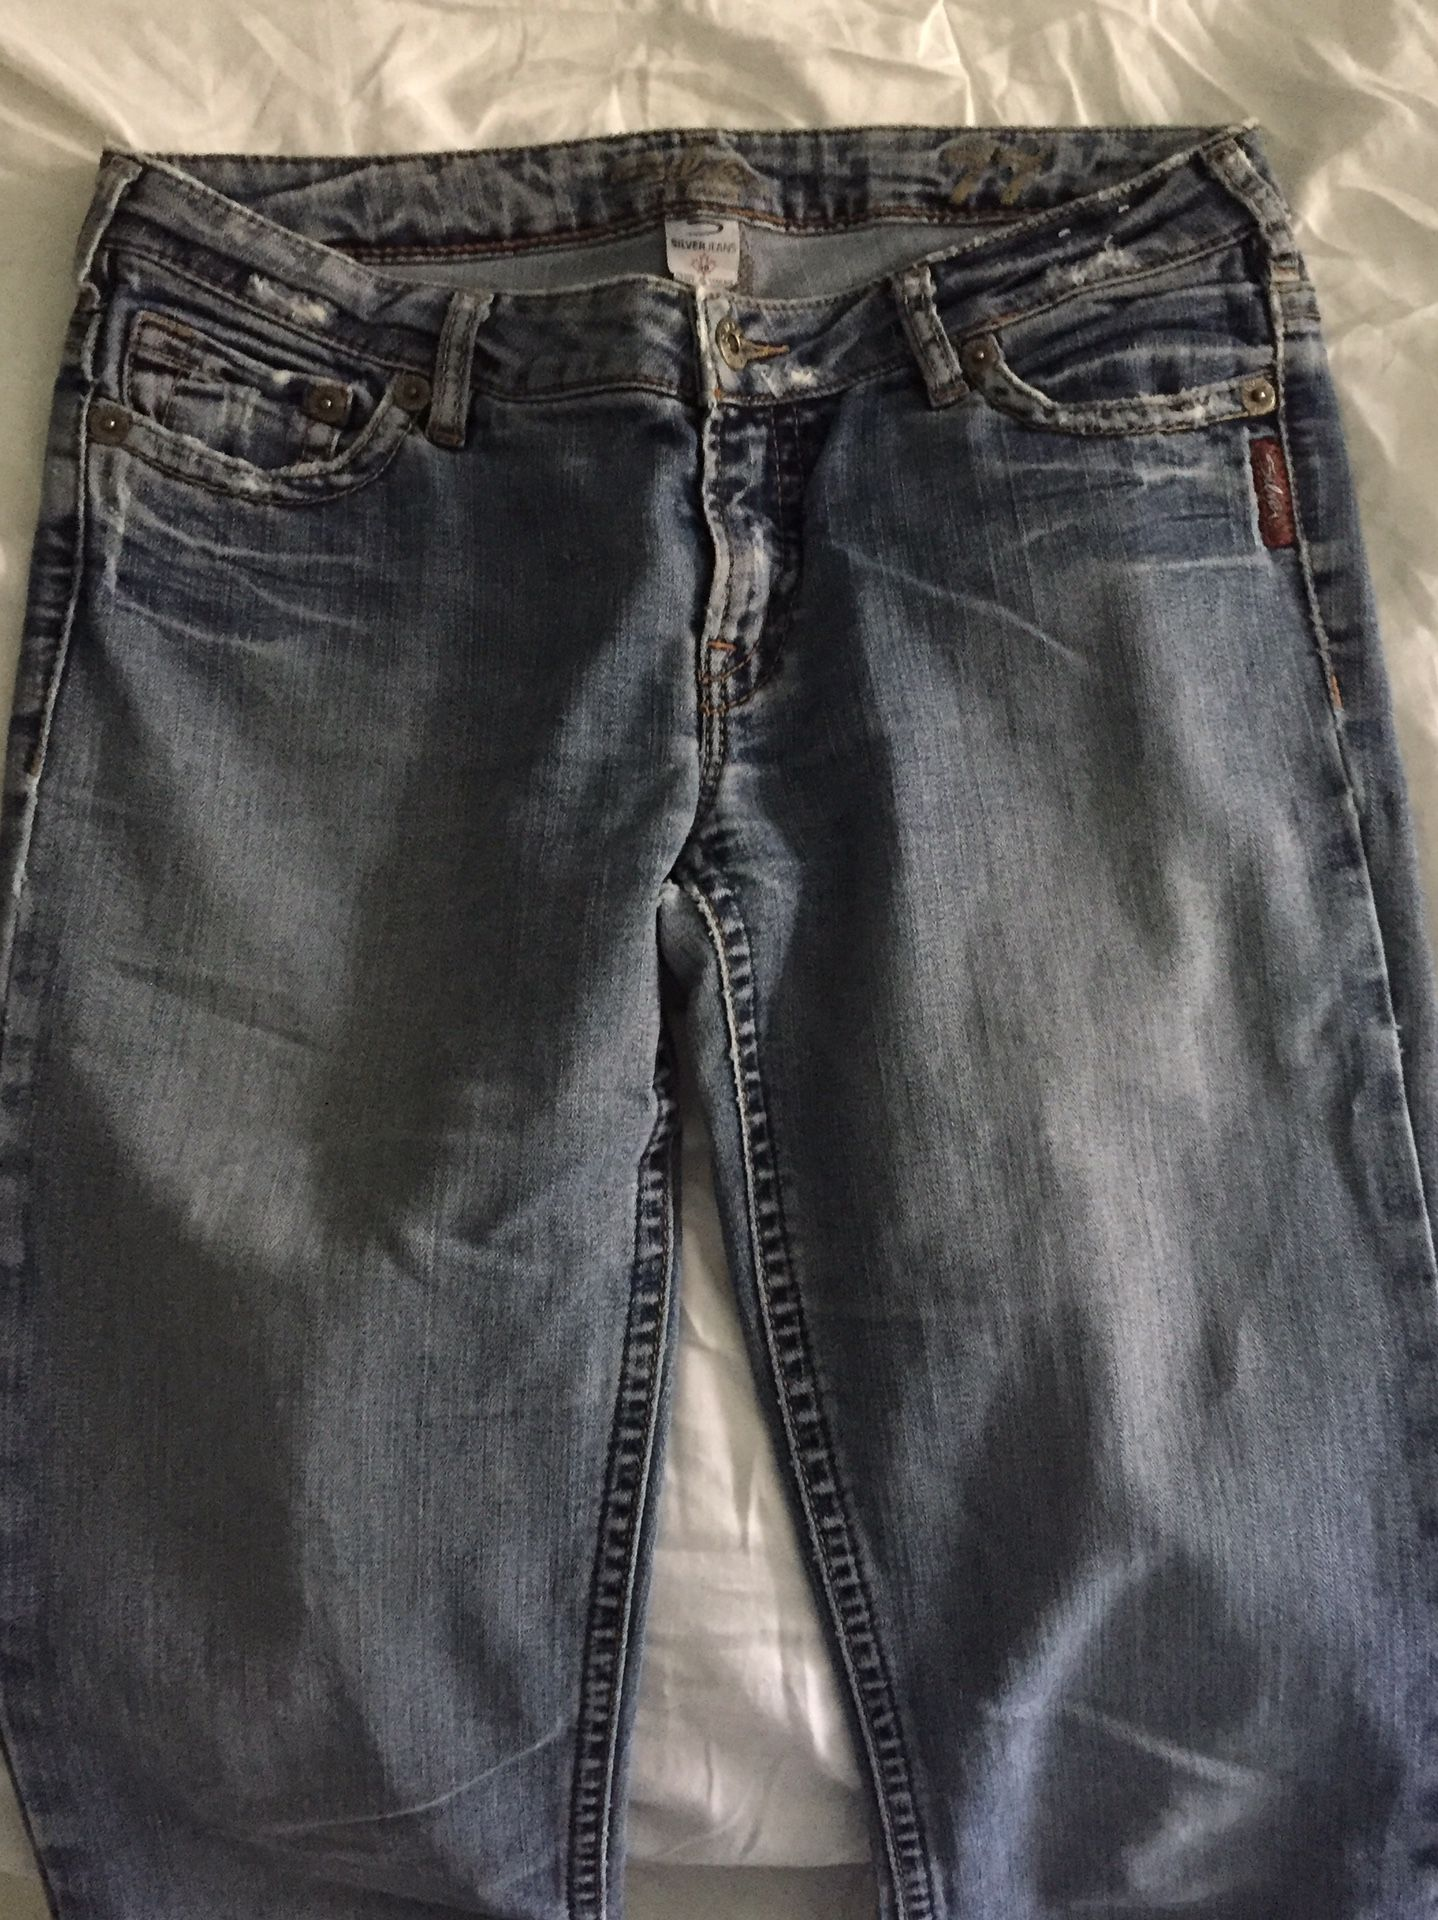 Extra-long Silver jeans (30x37)